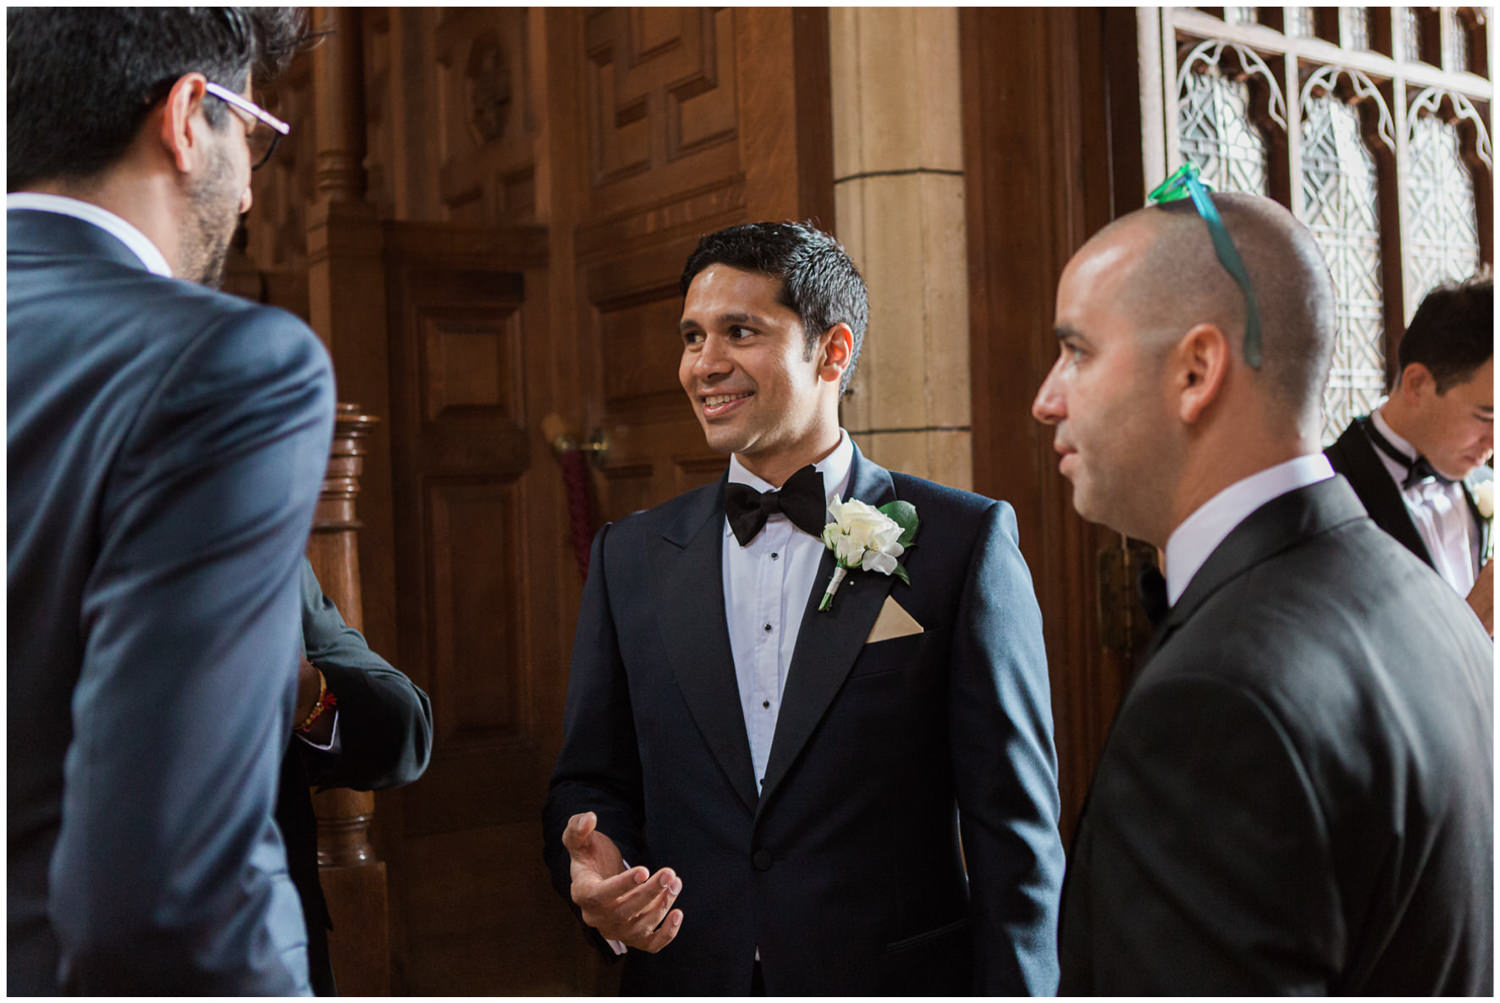 Groom greeting guests, Lucy Davenport Photography, Classic wedding